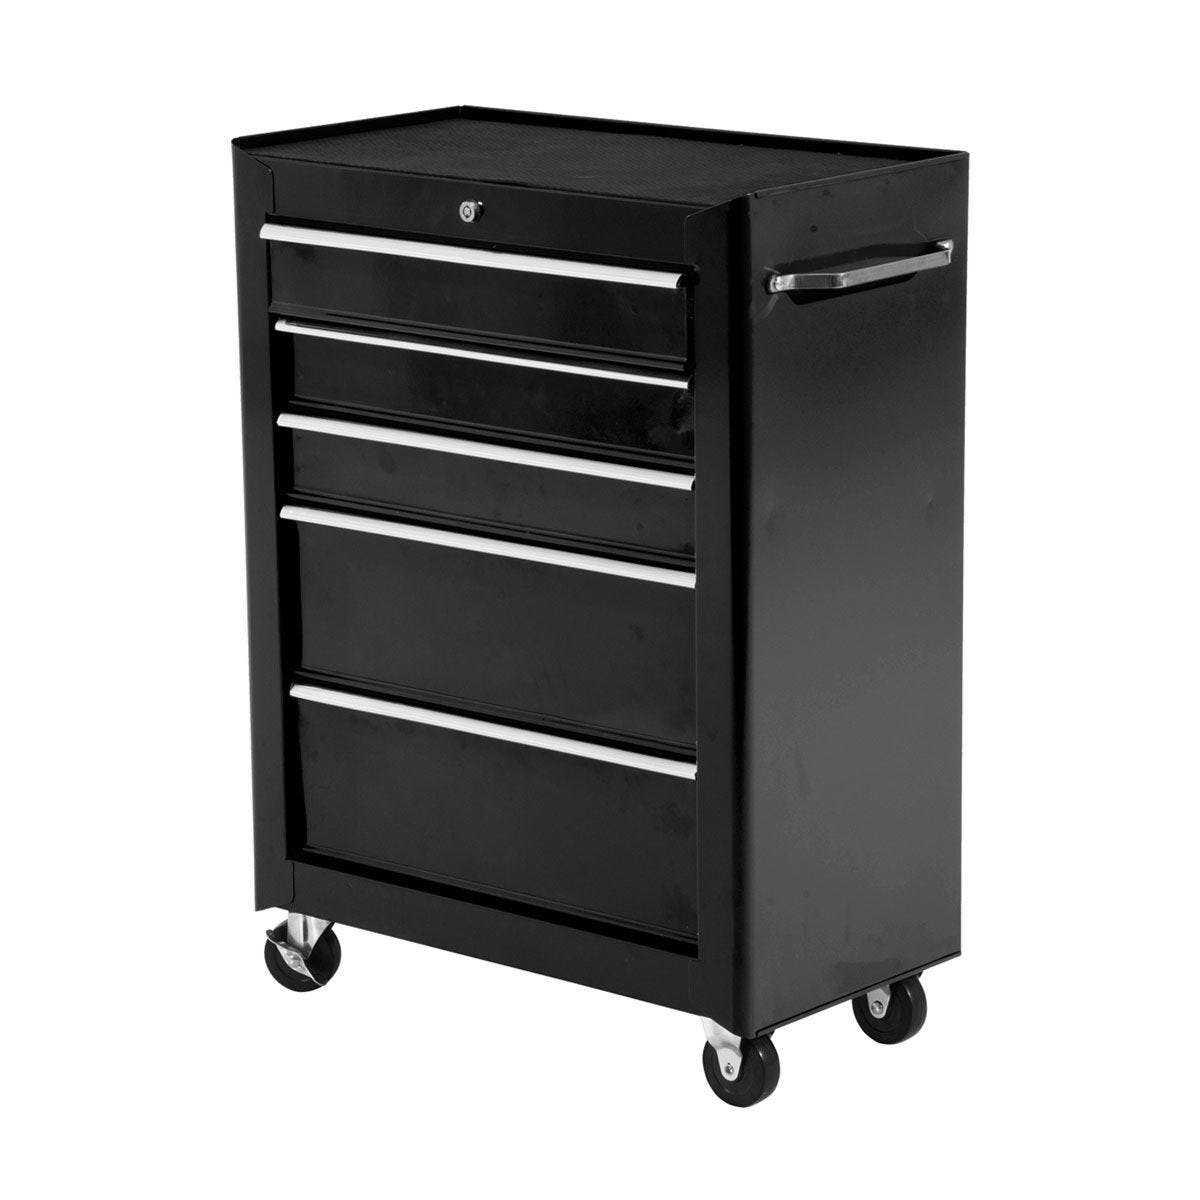 HOMCOM 5-Drawer Lockable Steel Tool Storage Cabinet with Wheels Handle - H82.5 x L61.5cm